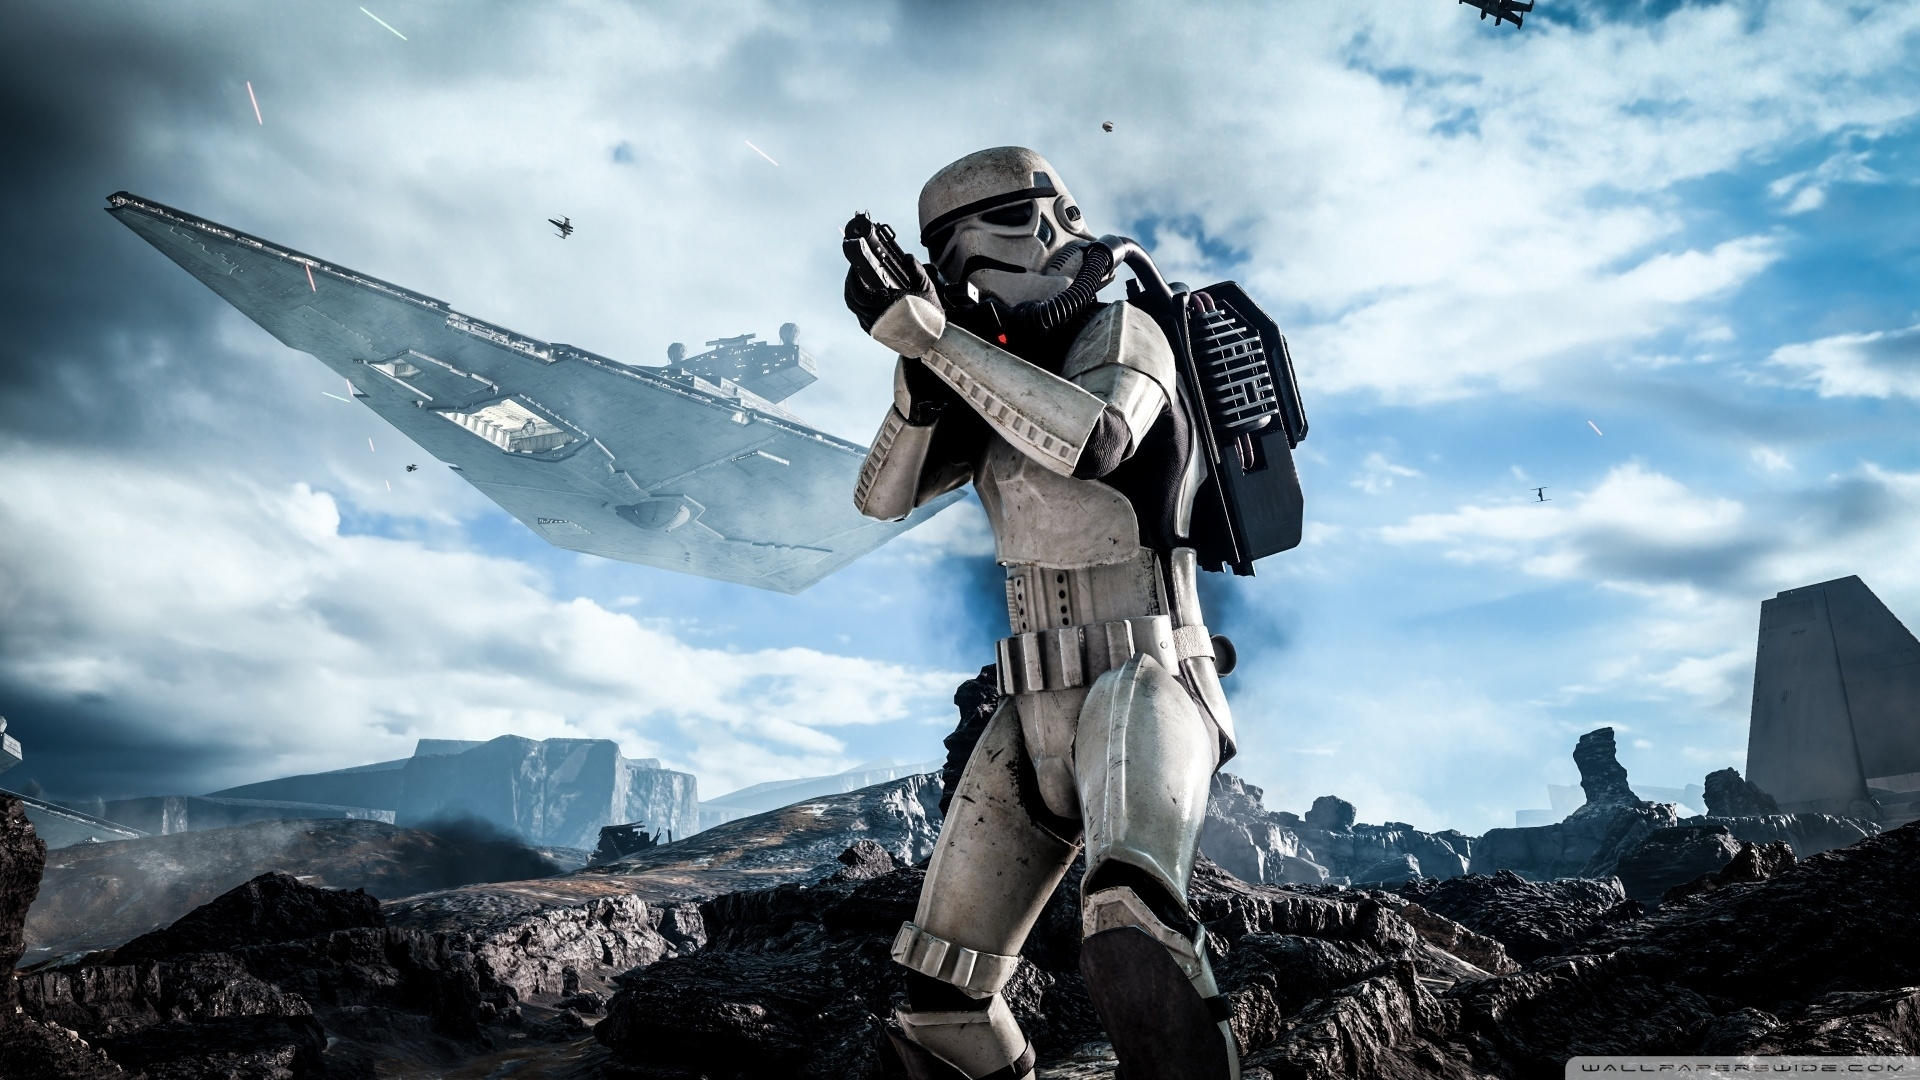 star wars battlefront stormtrooper ❤ 4k hd desktop wallpaper for 4k